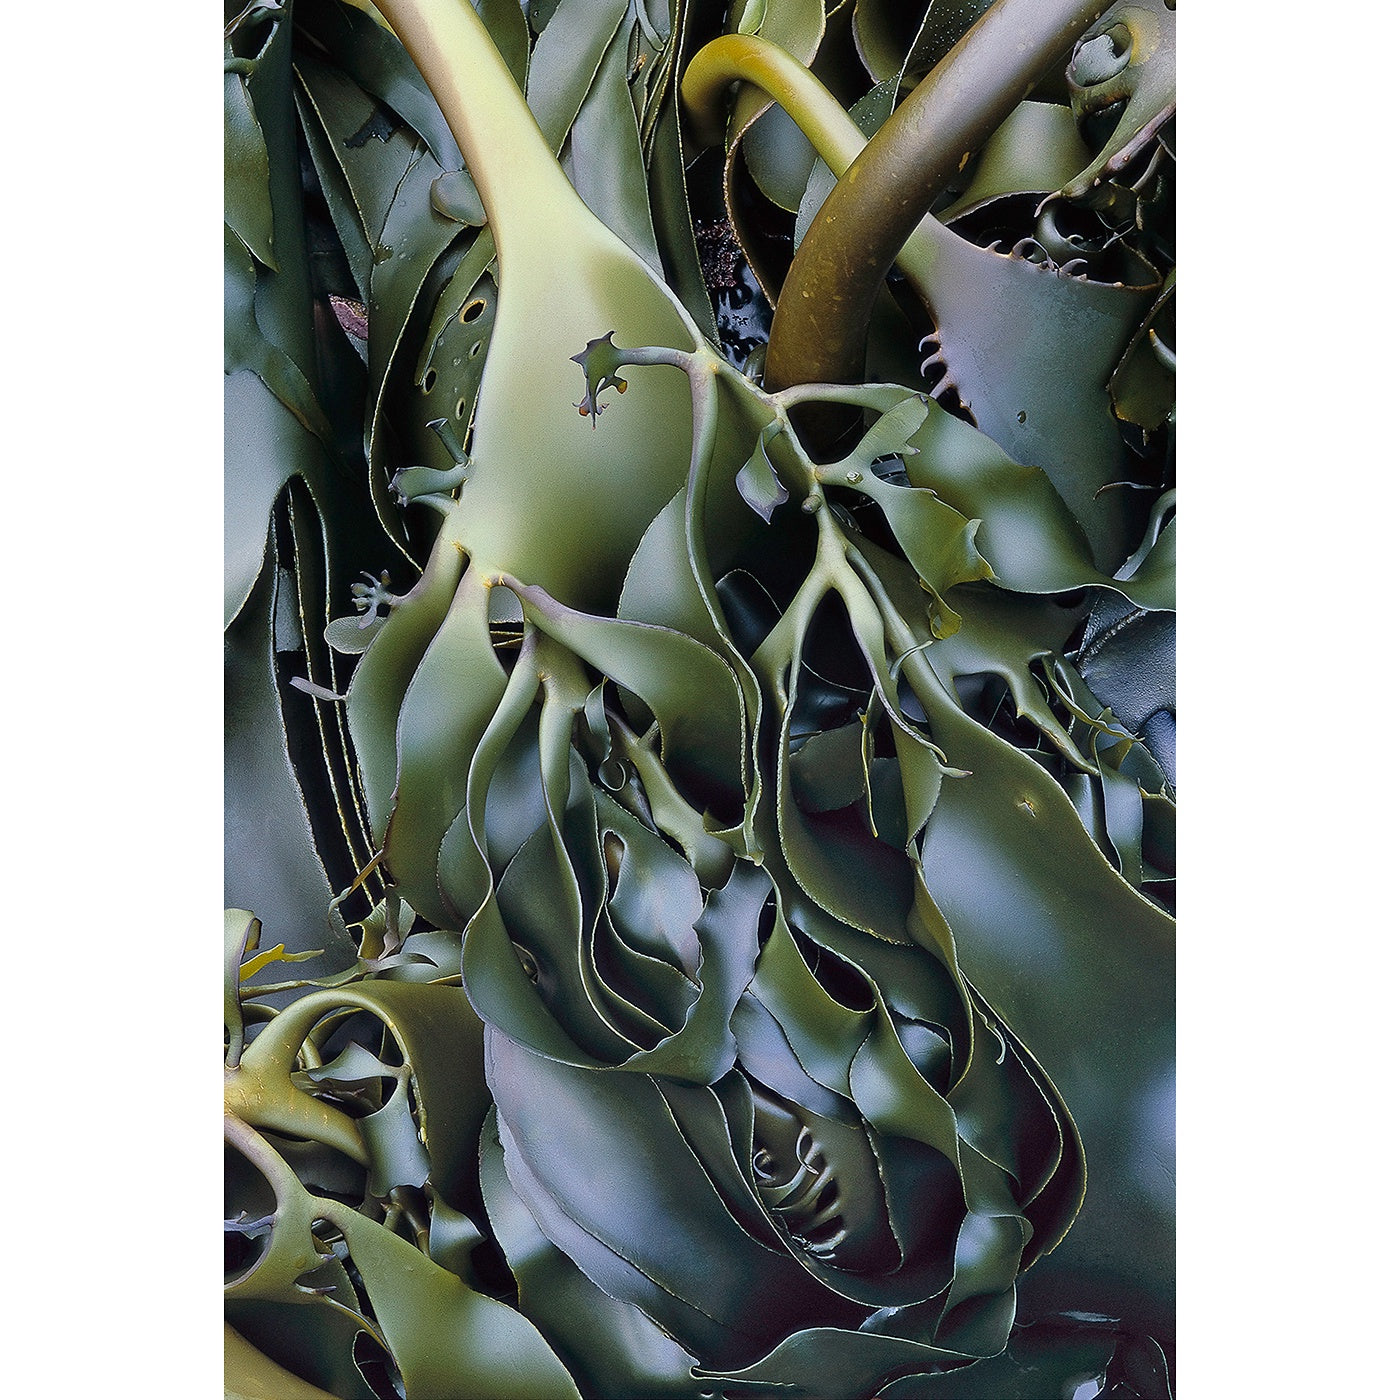 Chris Bell - Kelp, Tarkine